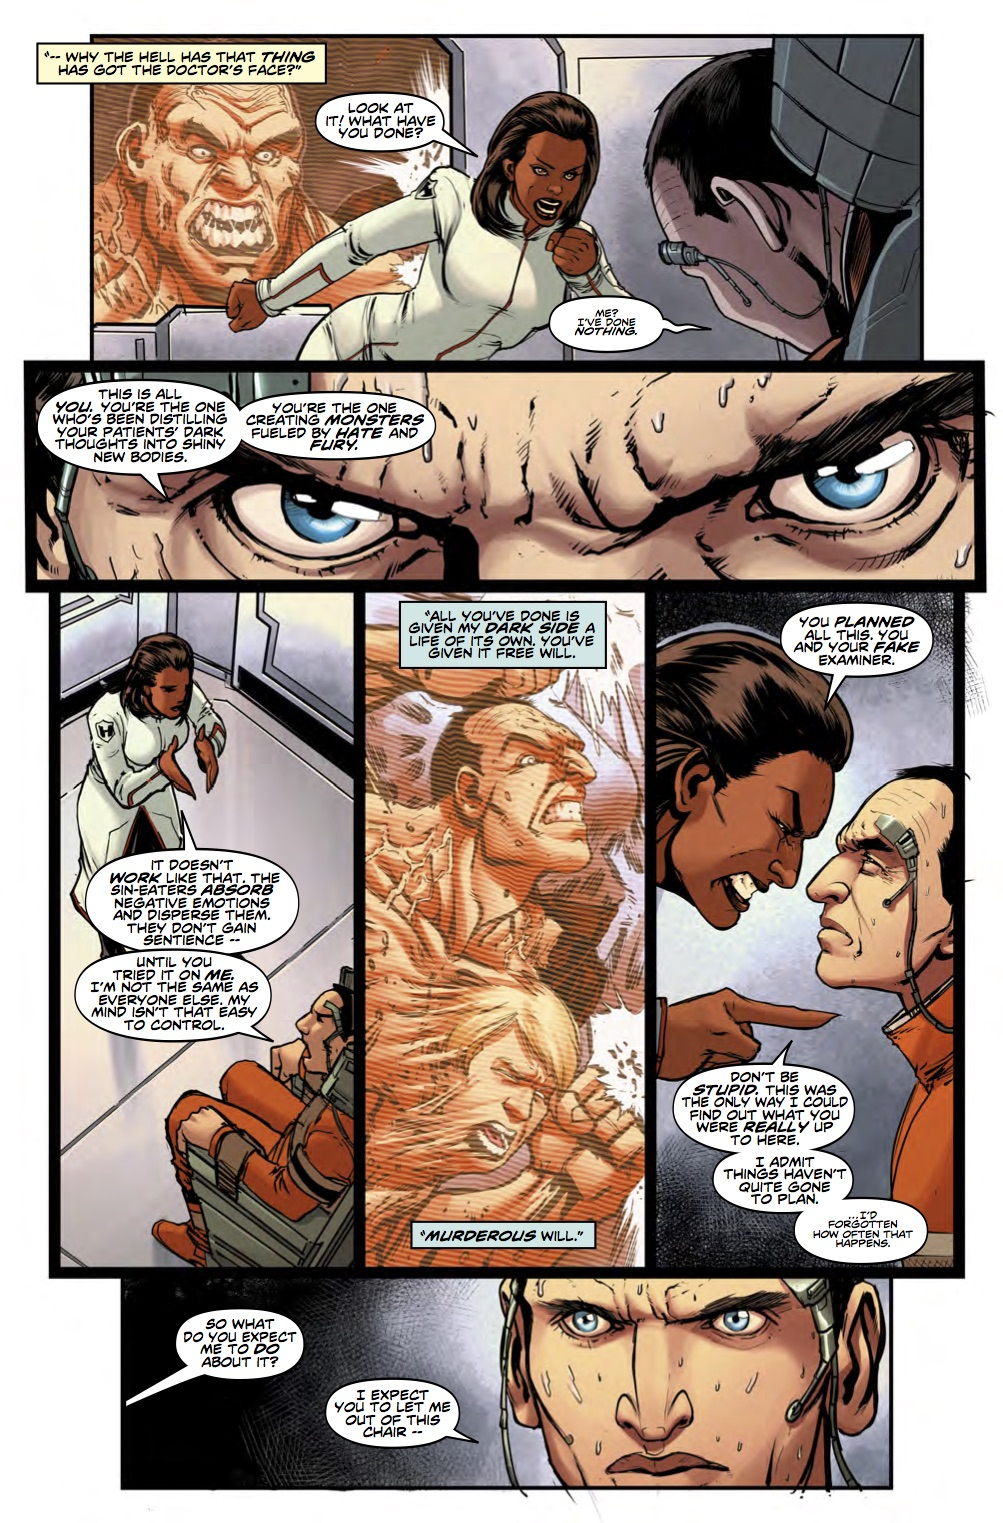 DOCTOR WHO: NINTH DOCTOR #12 Page 4 (Credit: Titan)